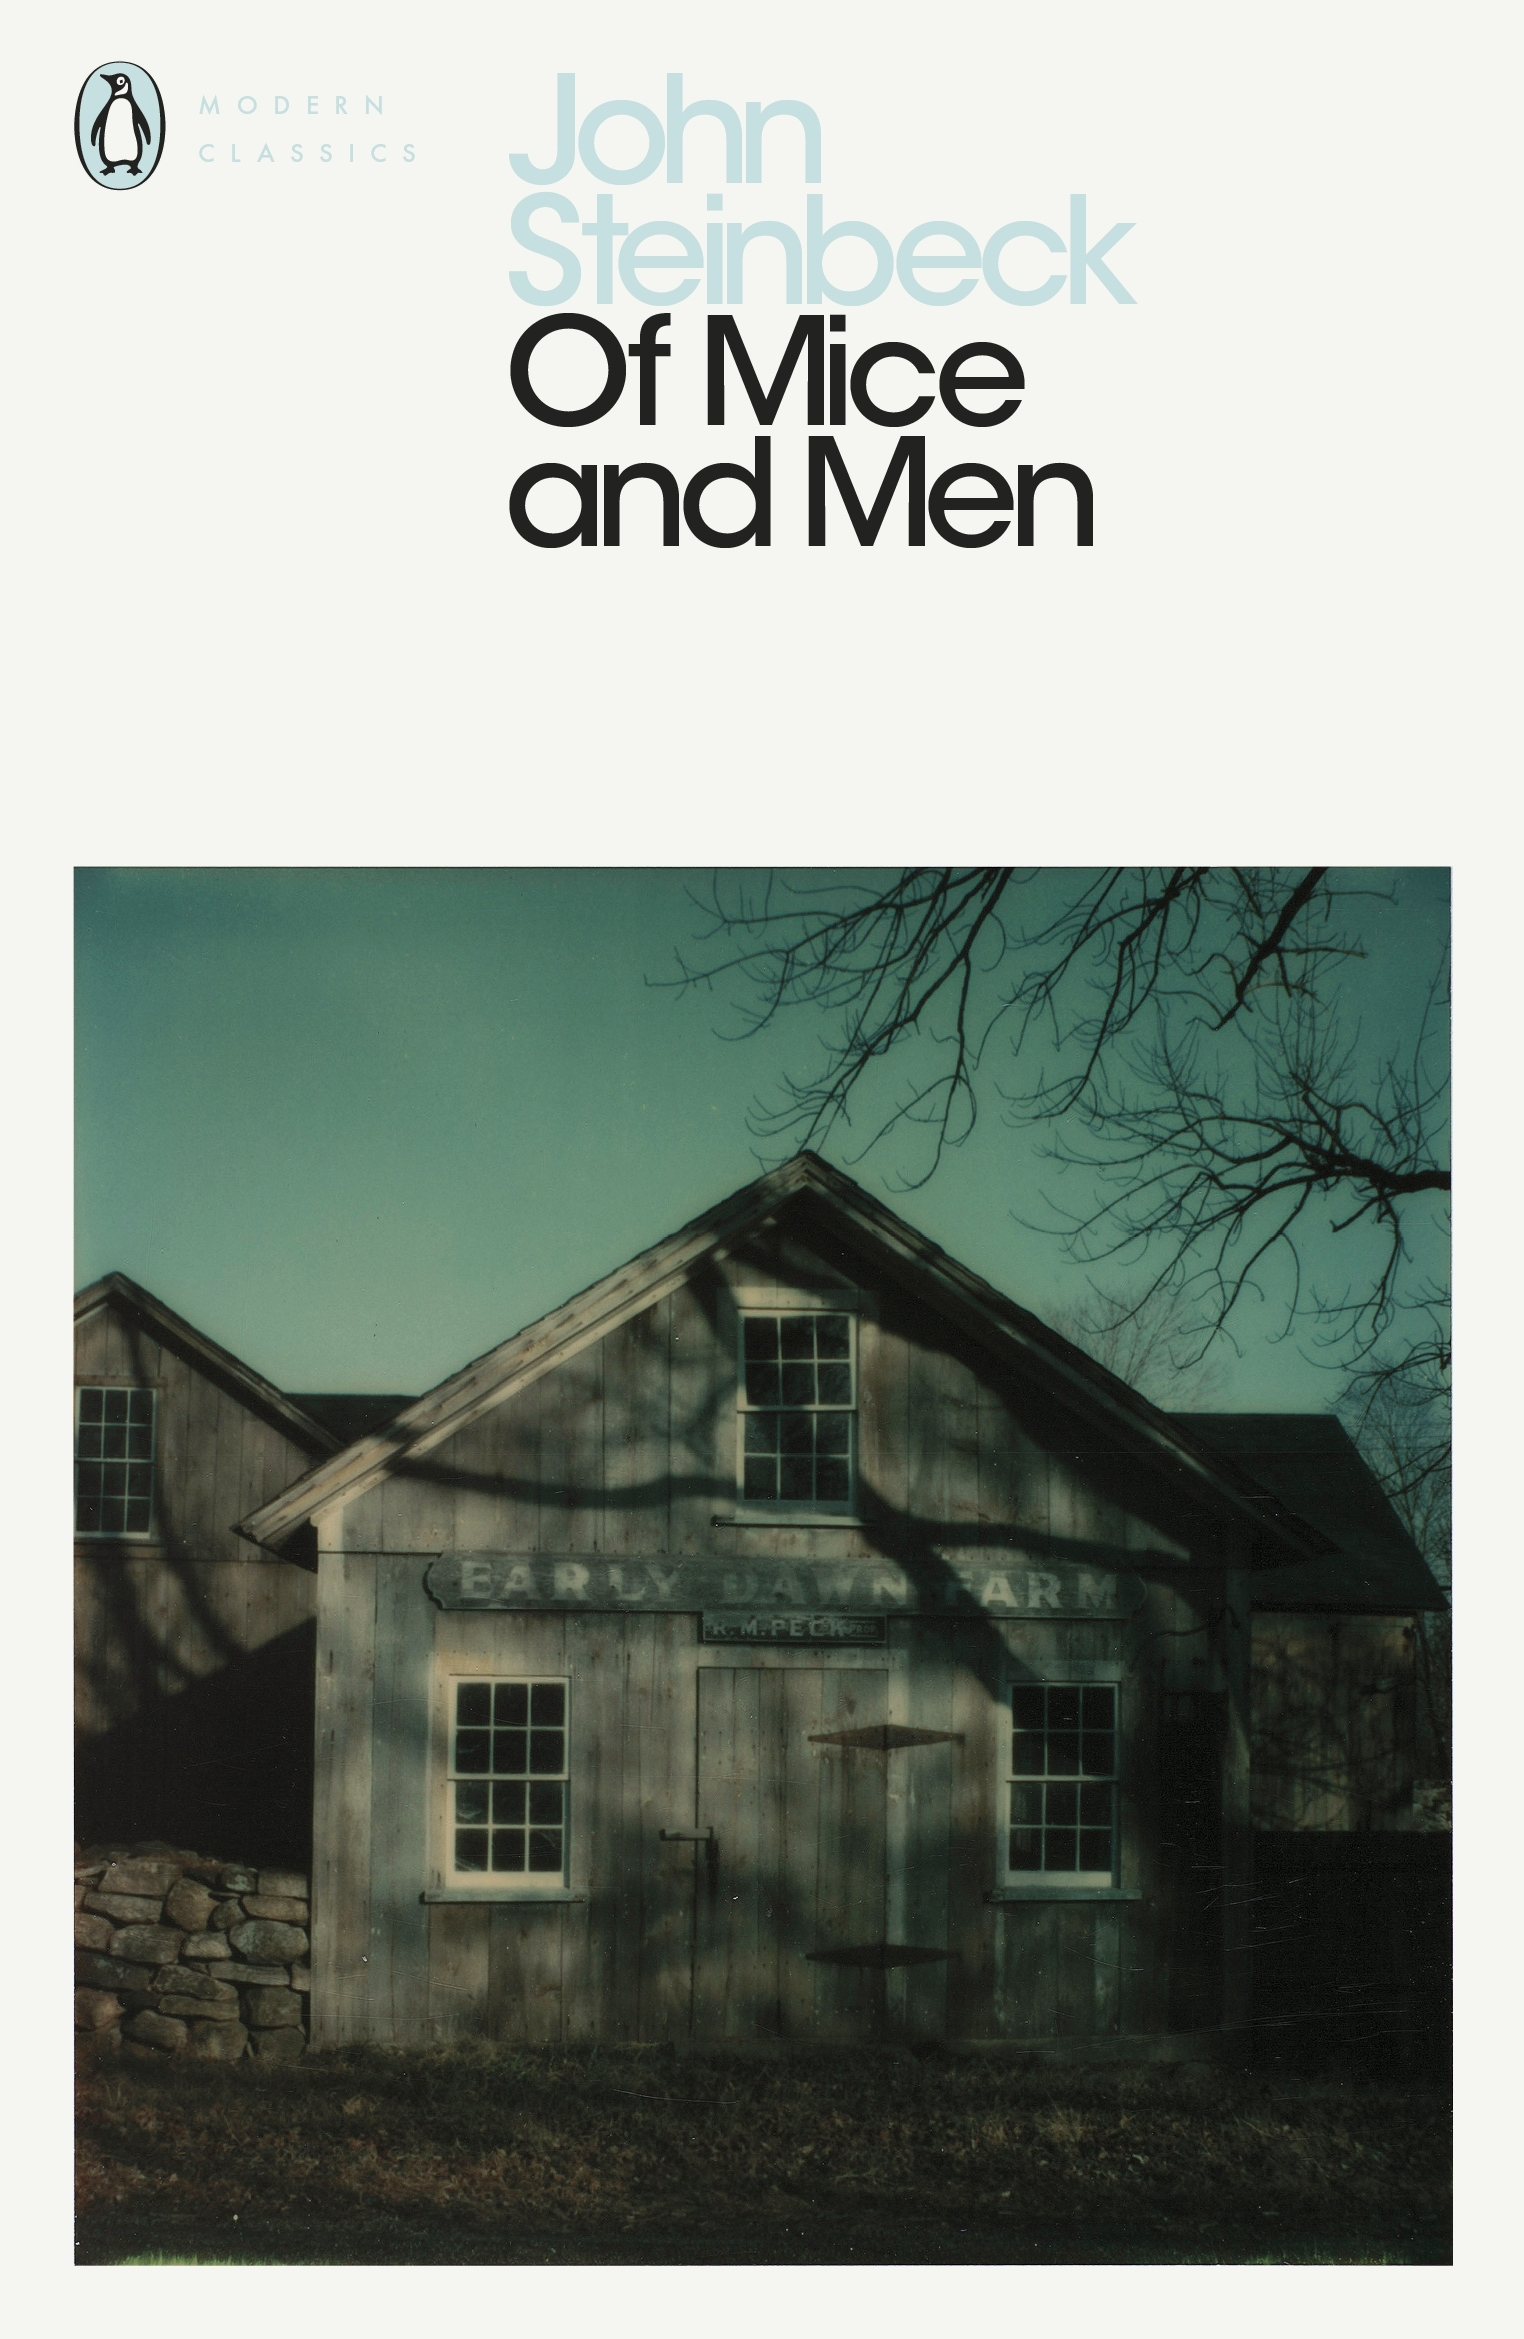 john steinbeck and his book of mice and men essay John steinbeck's classic novella of mice and men, first published in 1937, is a story of george and lennie, two migrant workers during the great depression they go from place to place in.